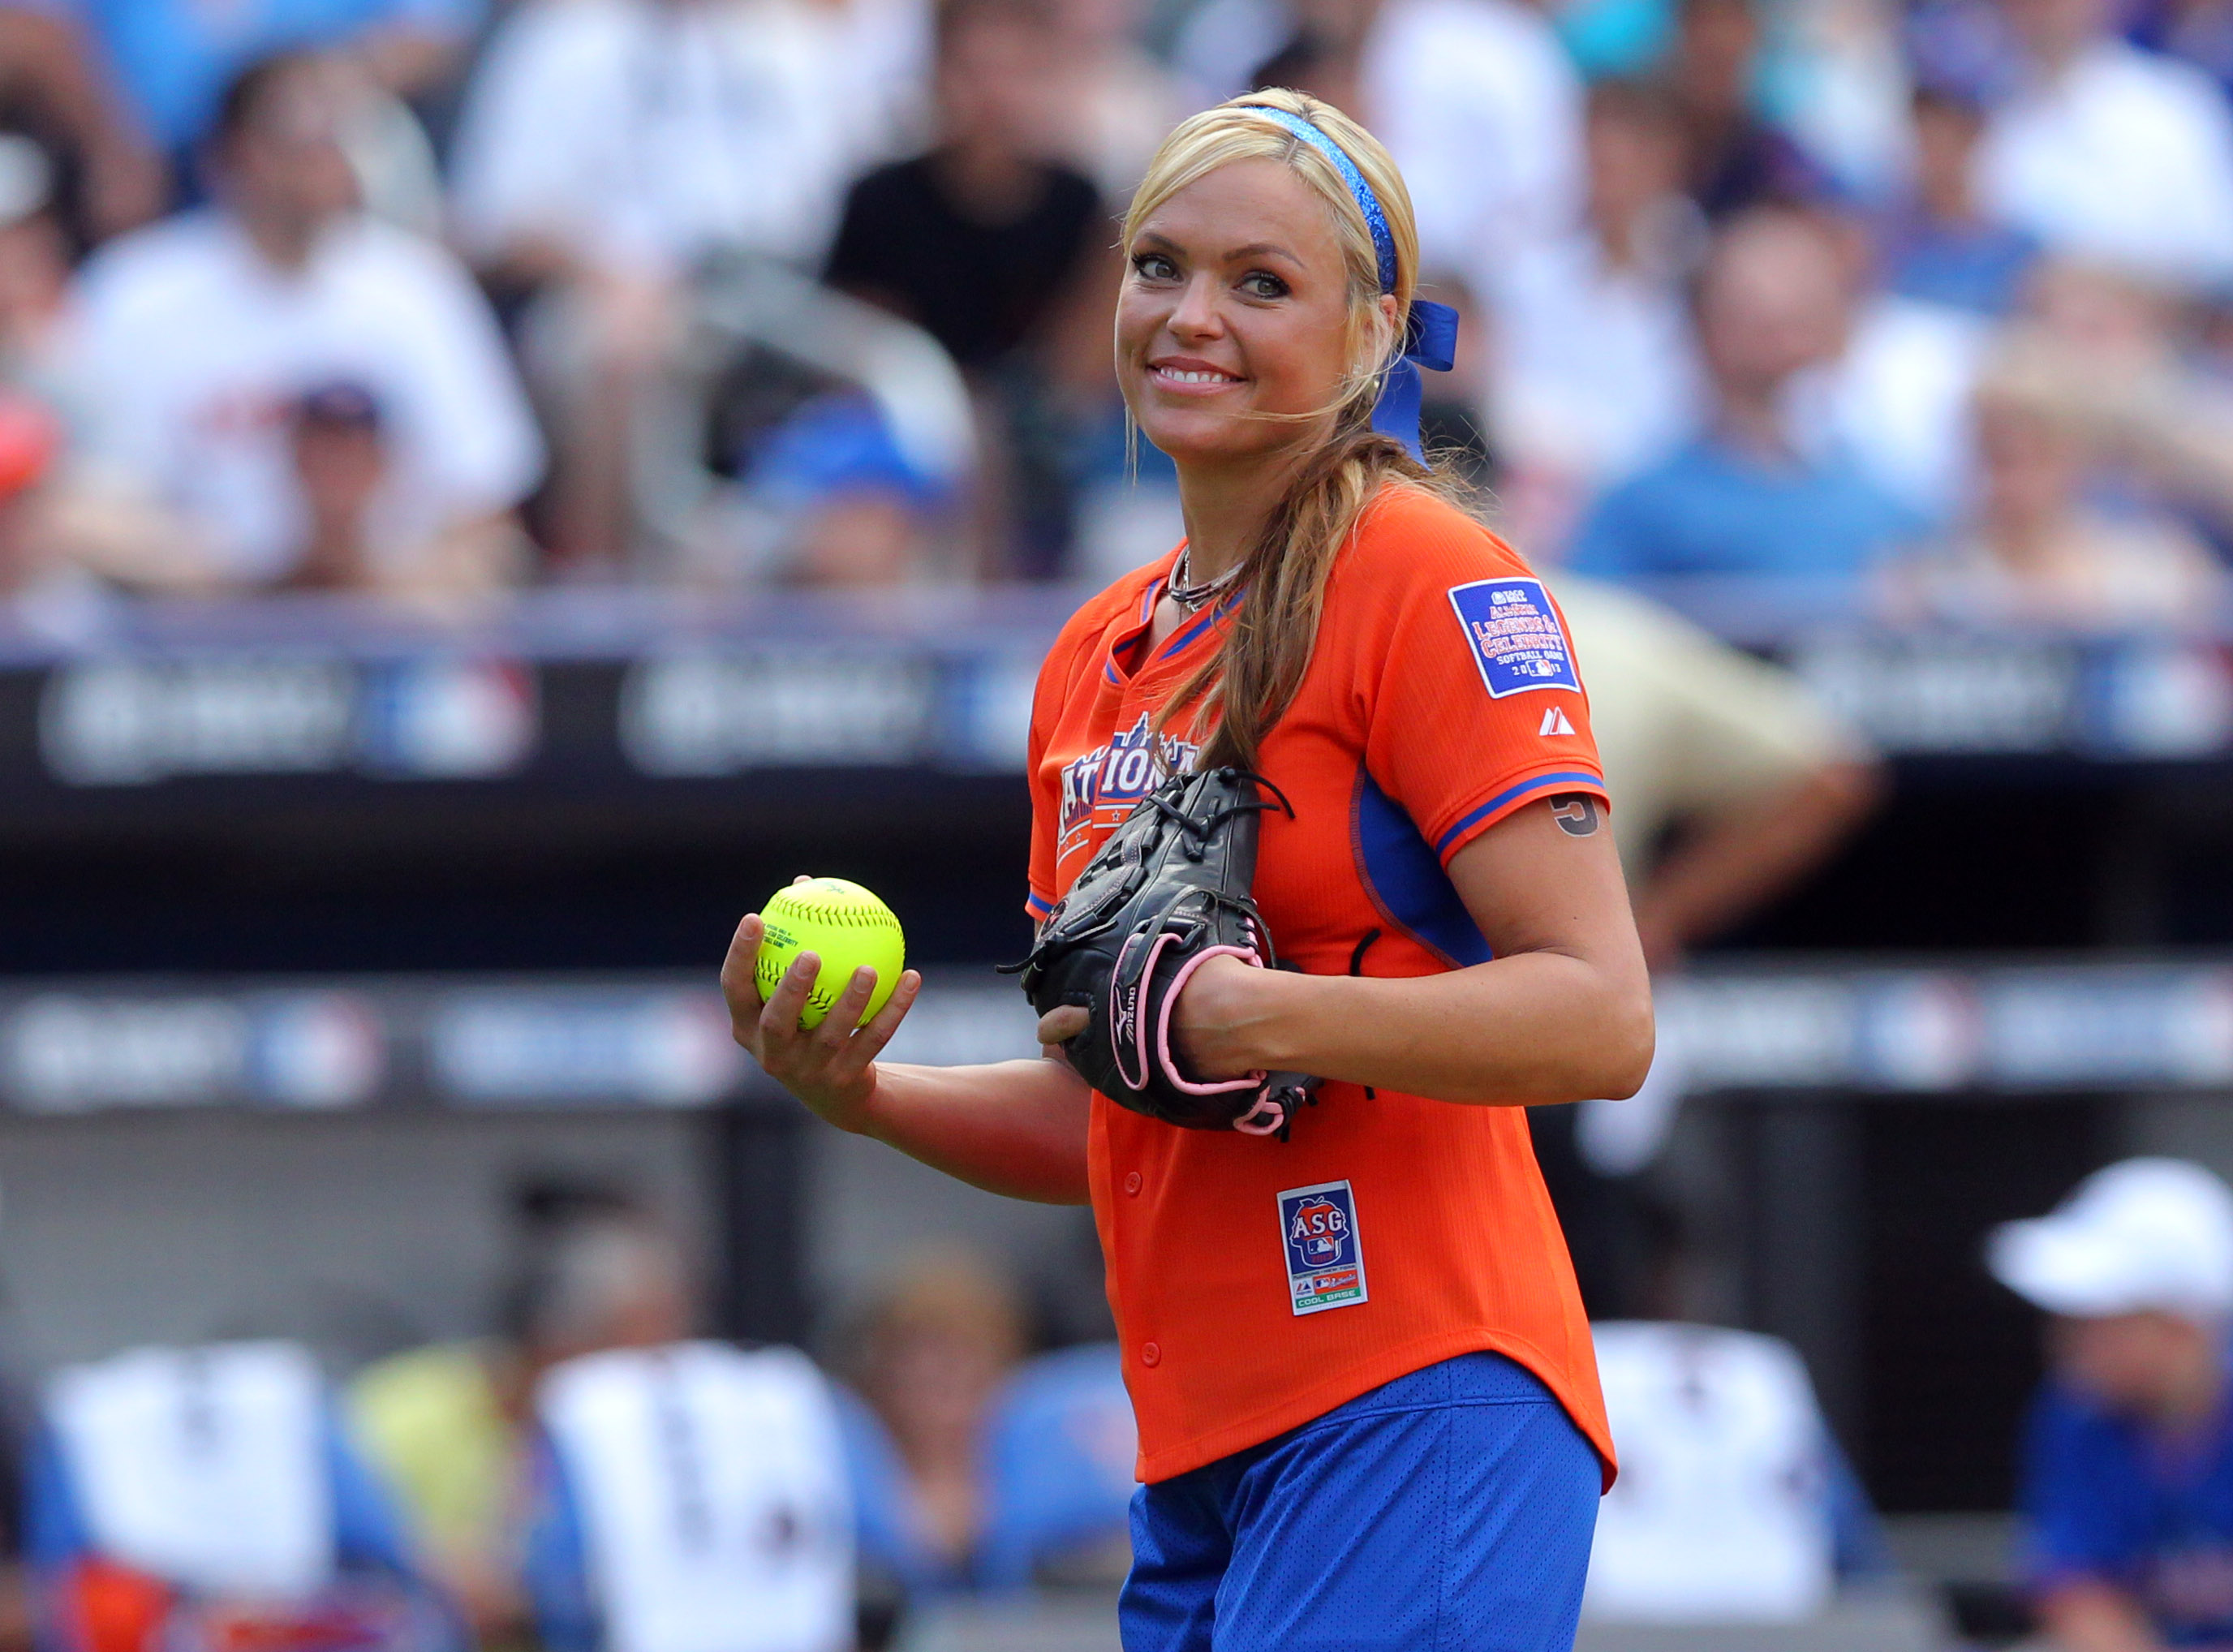 Jennie Finch at the celebrity softball game at the baseball All-Star Game in New York in 2013 (Photo: Brad Penner, USA TODAY Sports)